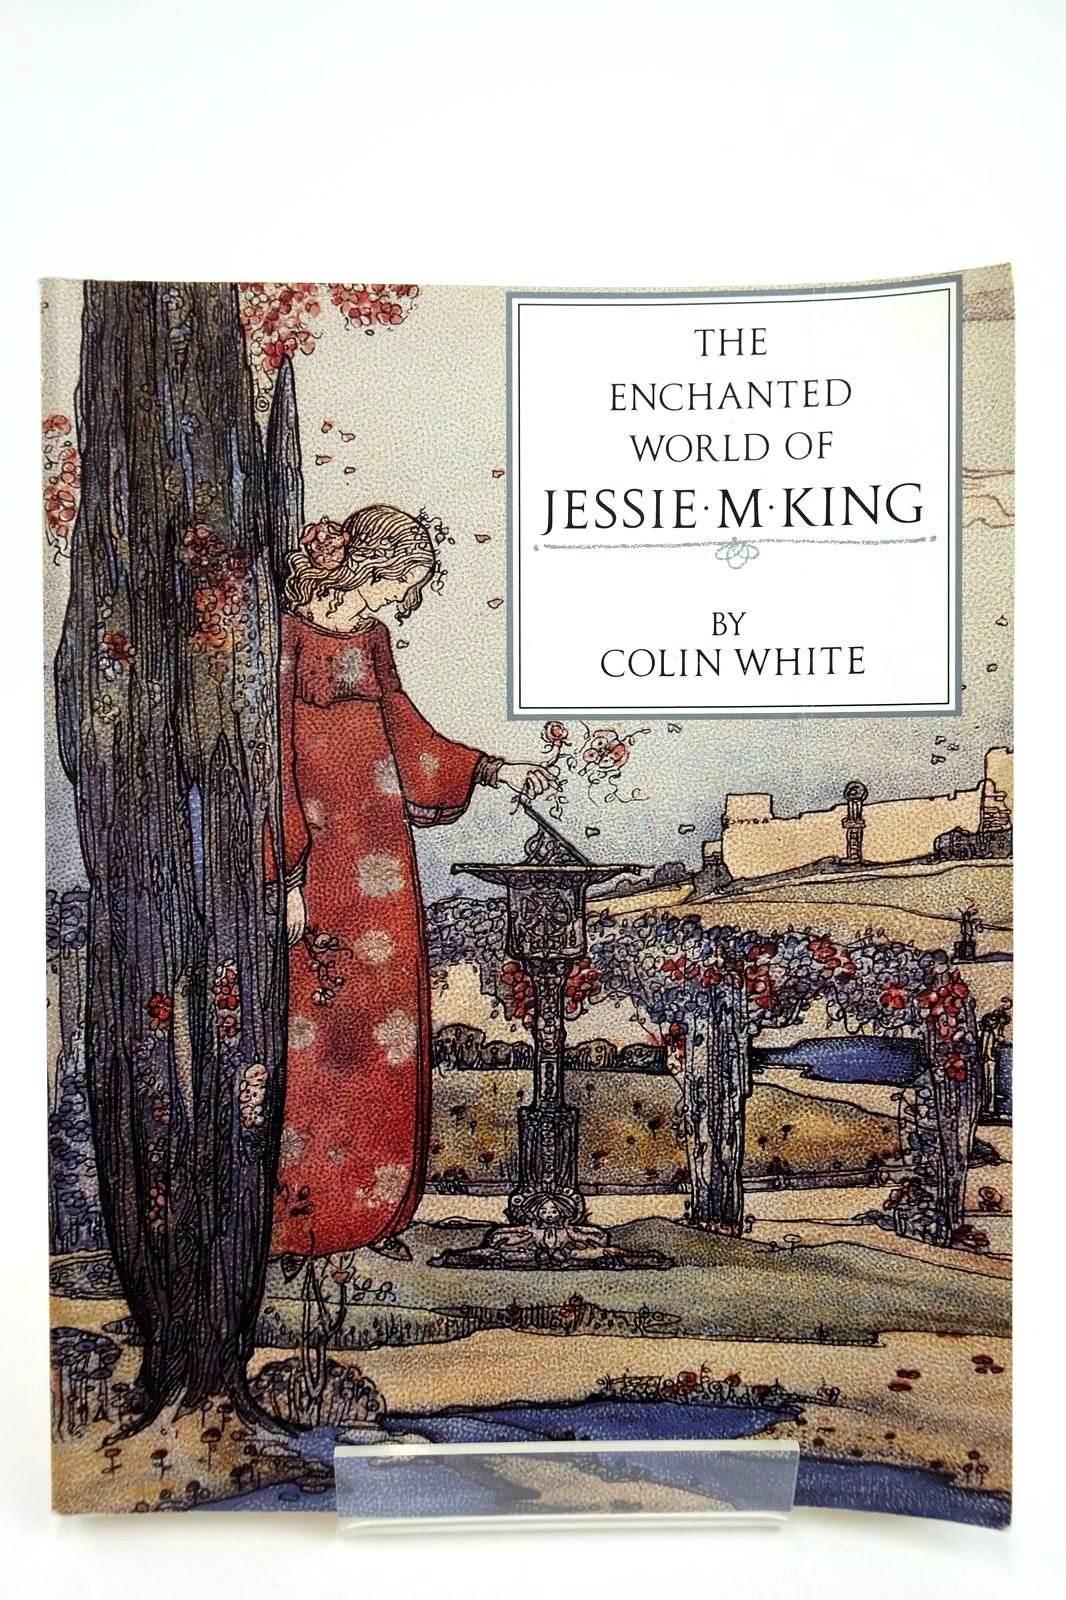 Photo of THE ENCHANTED WORLD OF JESSIE M. KING written by White, Colin illustrated by King, Jessie M. published by Canongate Publishing Limited (STOCK CODE: 2132549)  for sale by Stella & Rose's Books